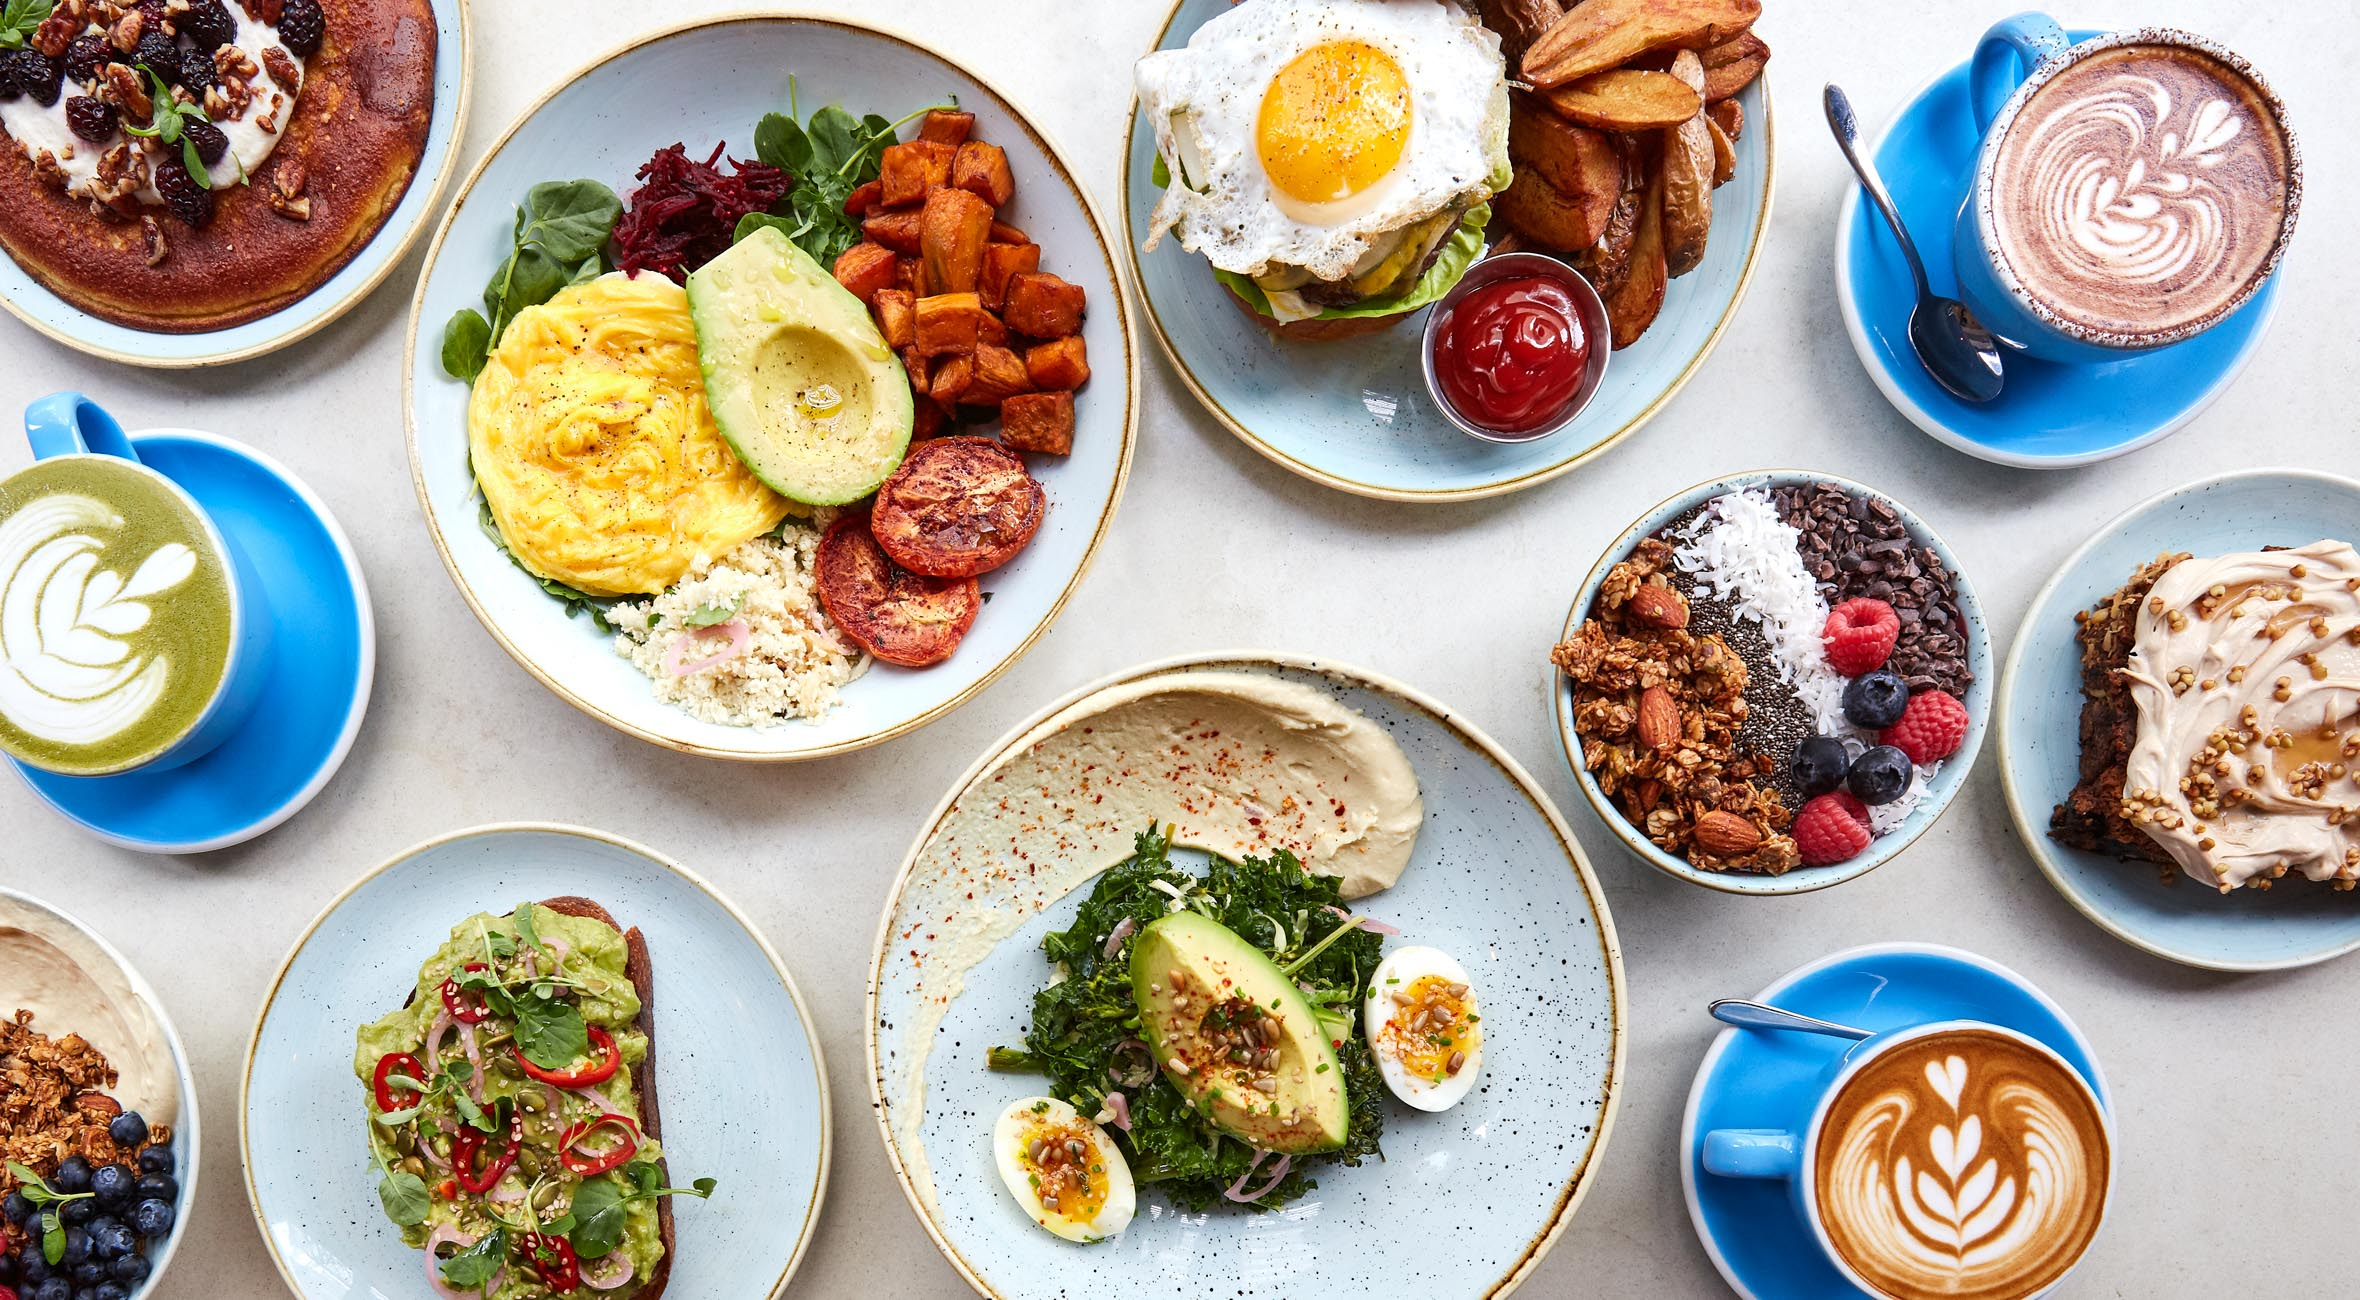 Pick Whatever You Like at Two Hands – From Acai Bowls to Avocado Toasts, Burgers, Salad Bowls, Banana Bread etc.